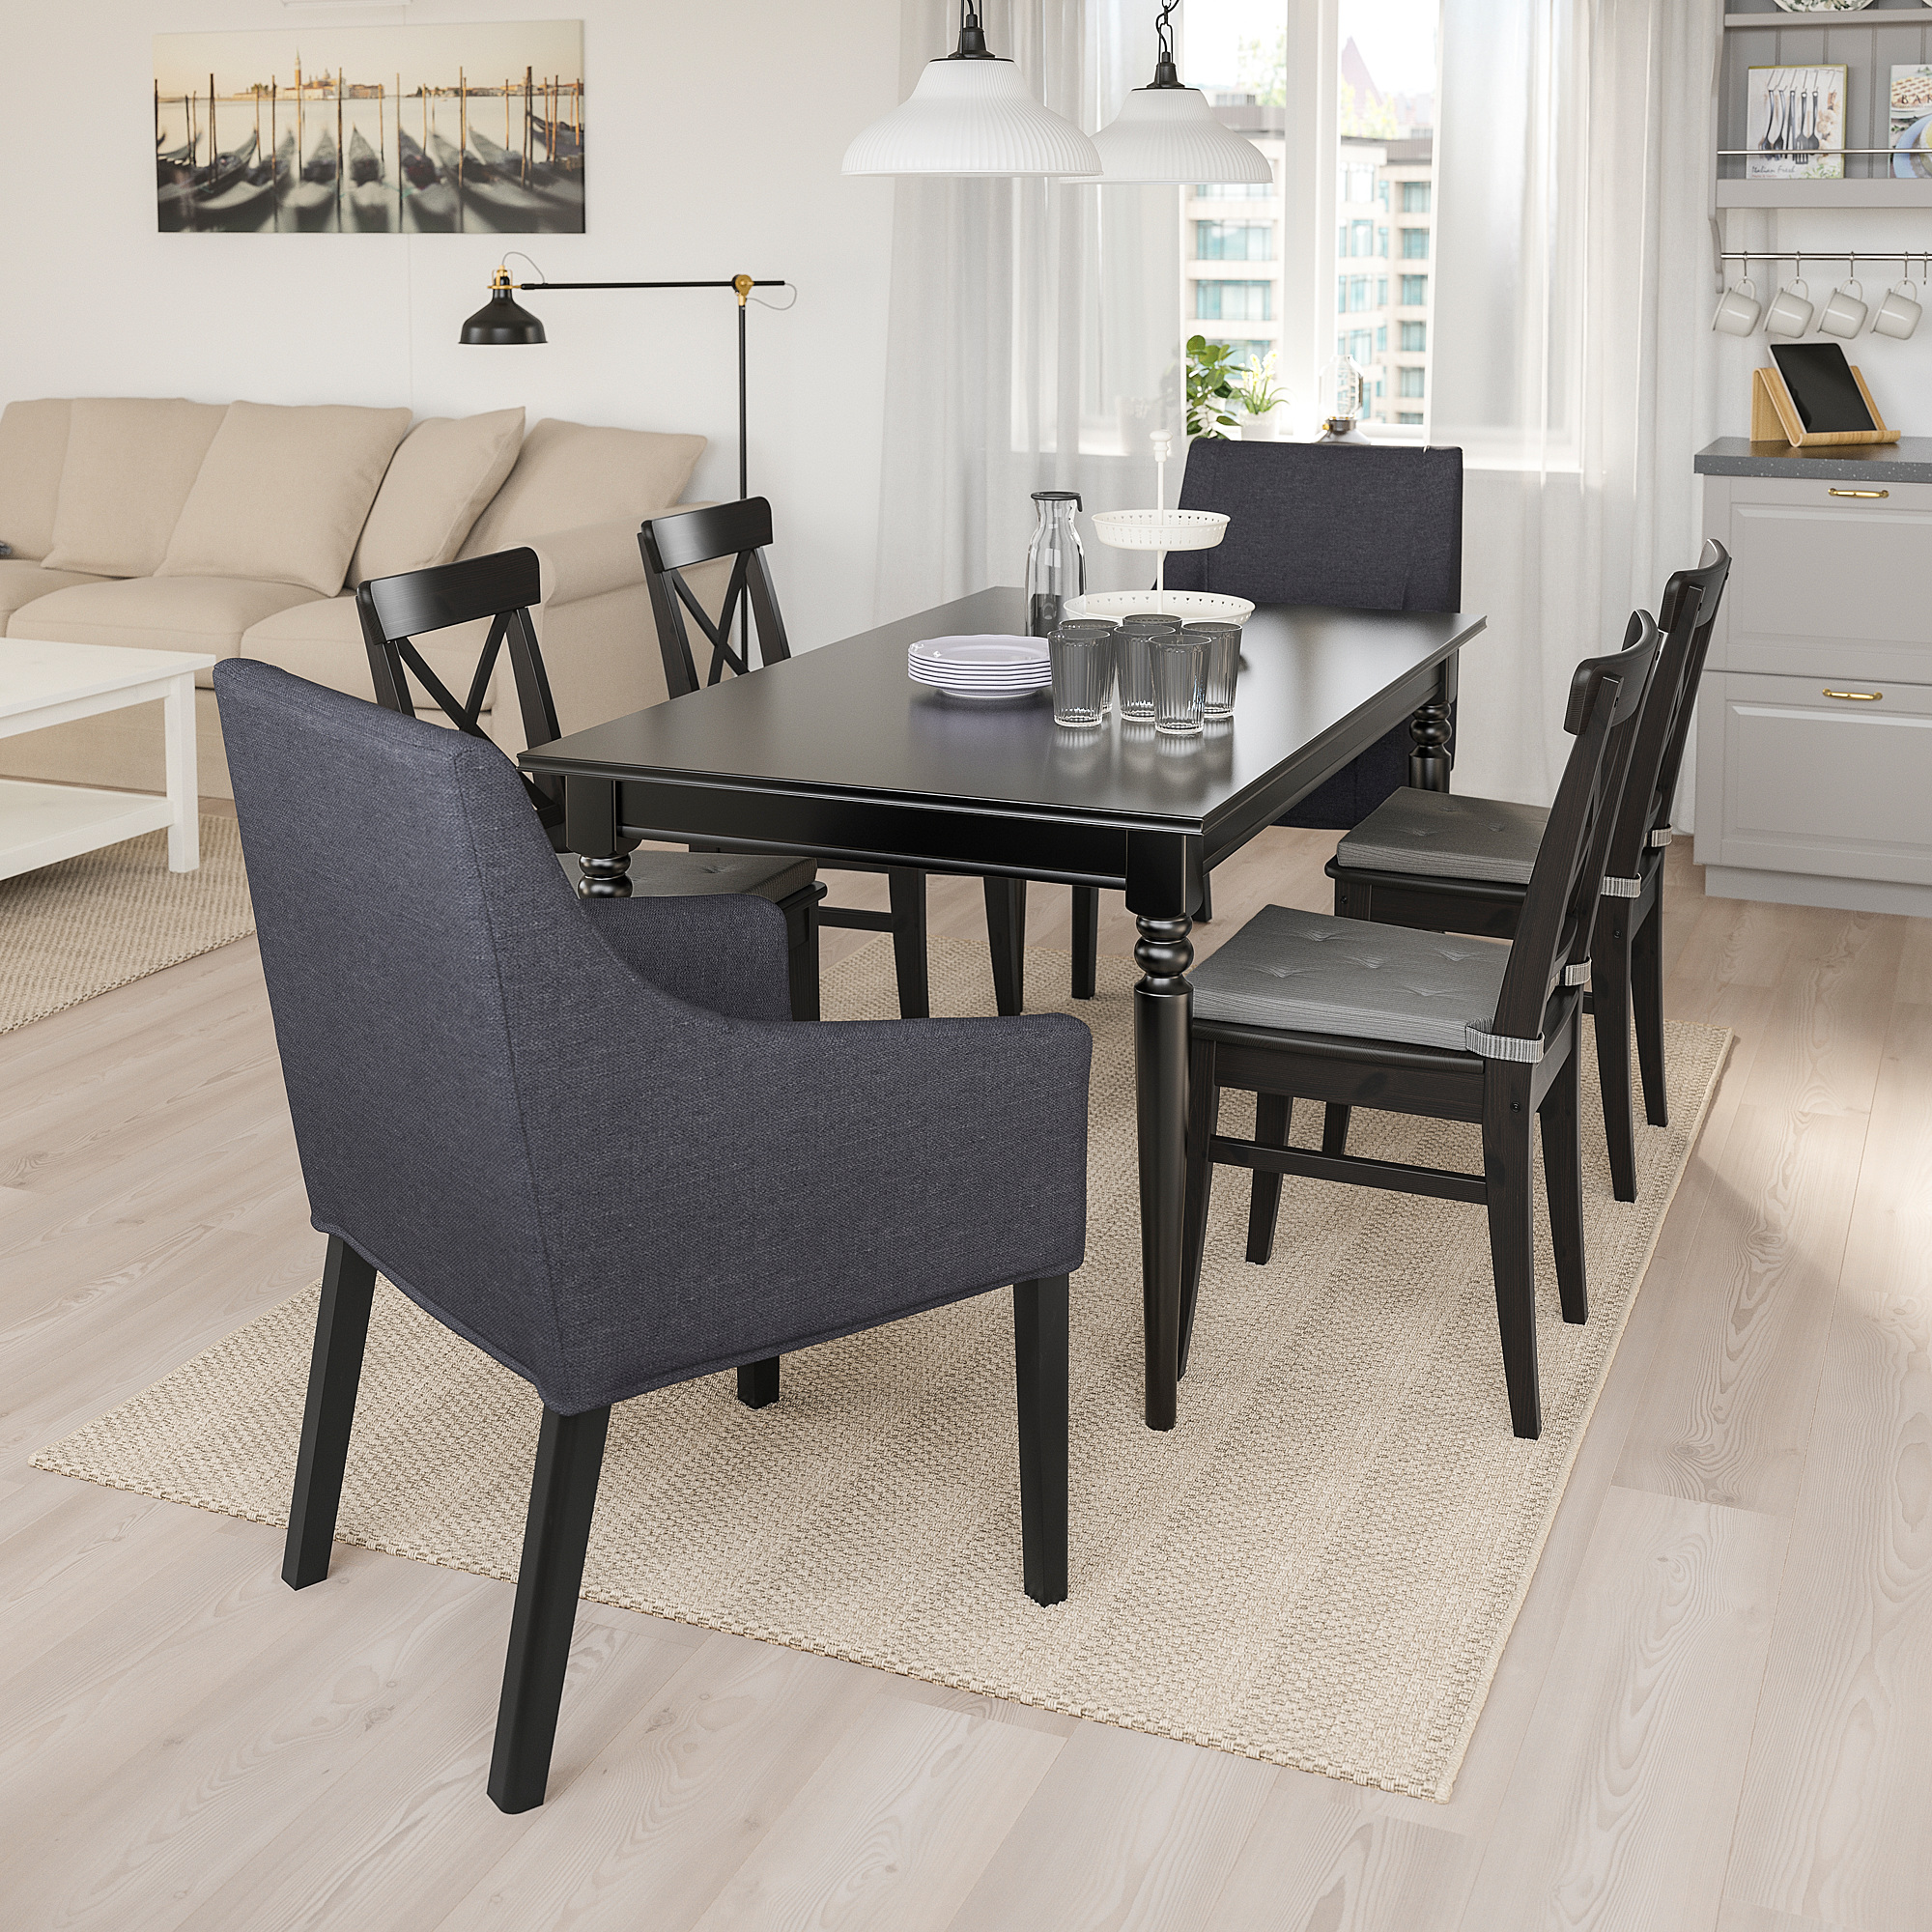 Dining Furniture Room Info Gallery @house2homegoods.net